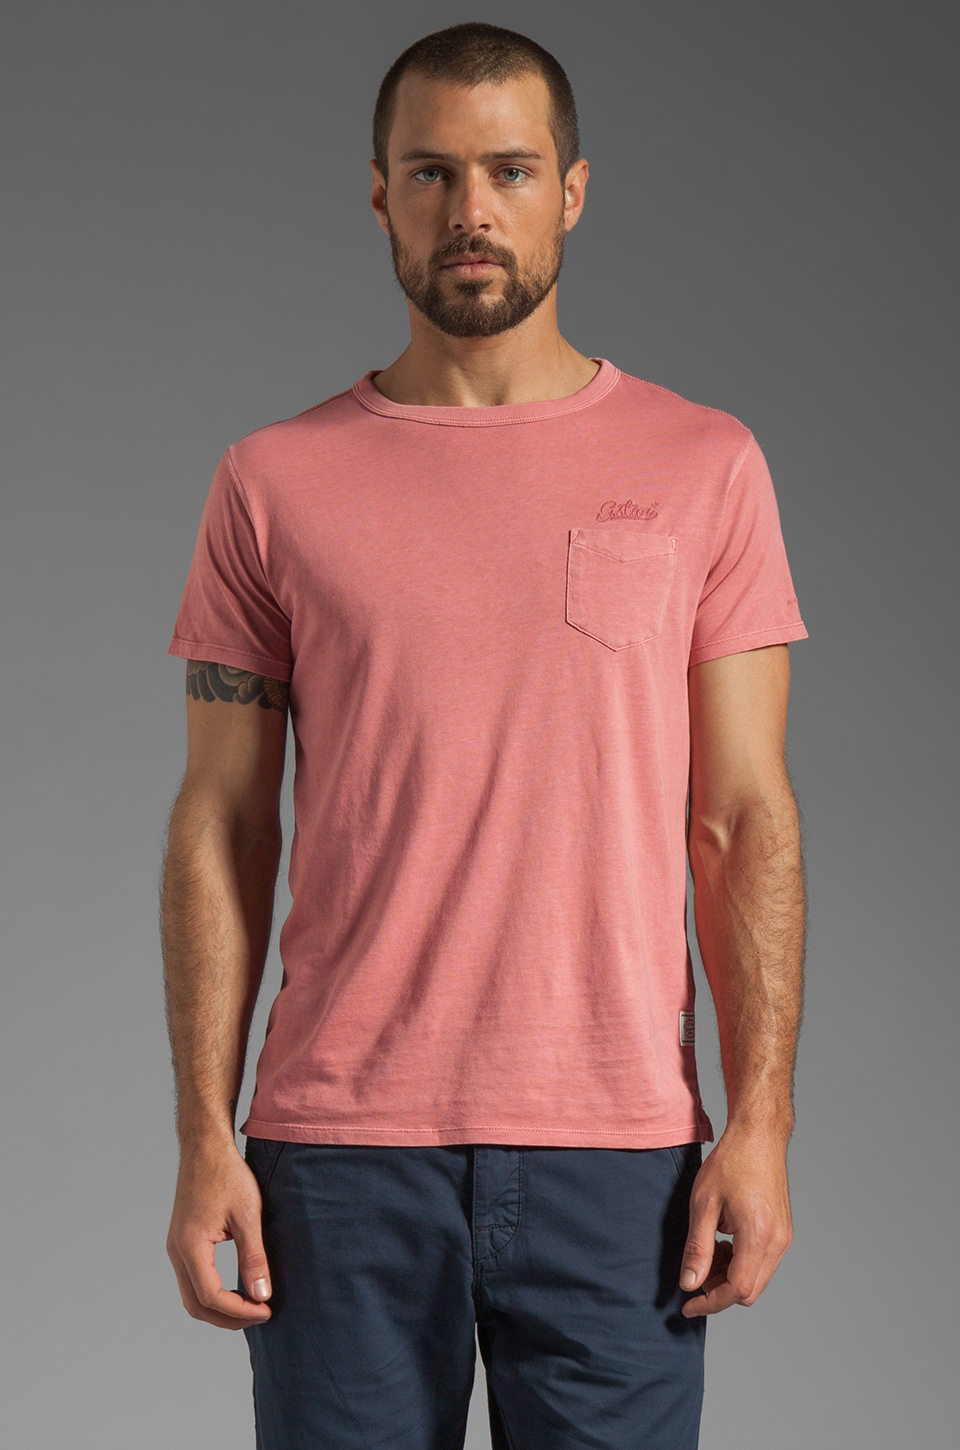 G-Star Tube RT Tee in Dusty Rose